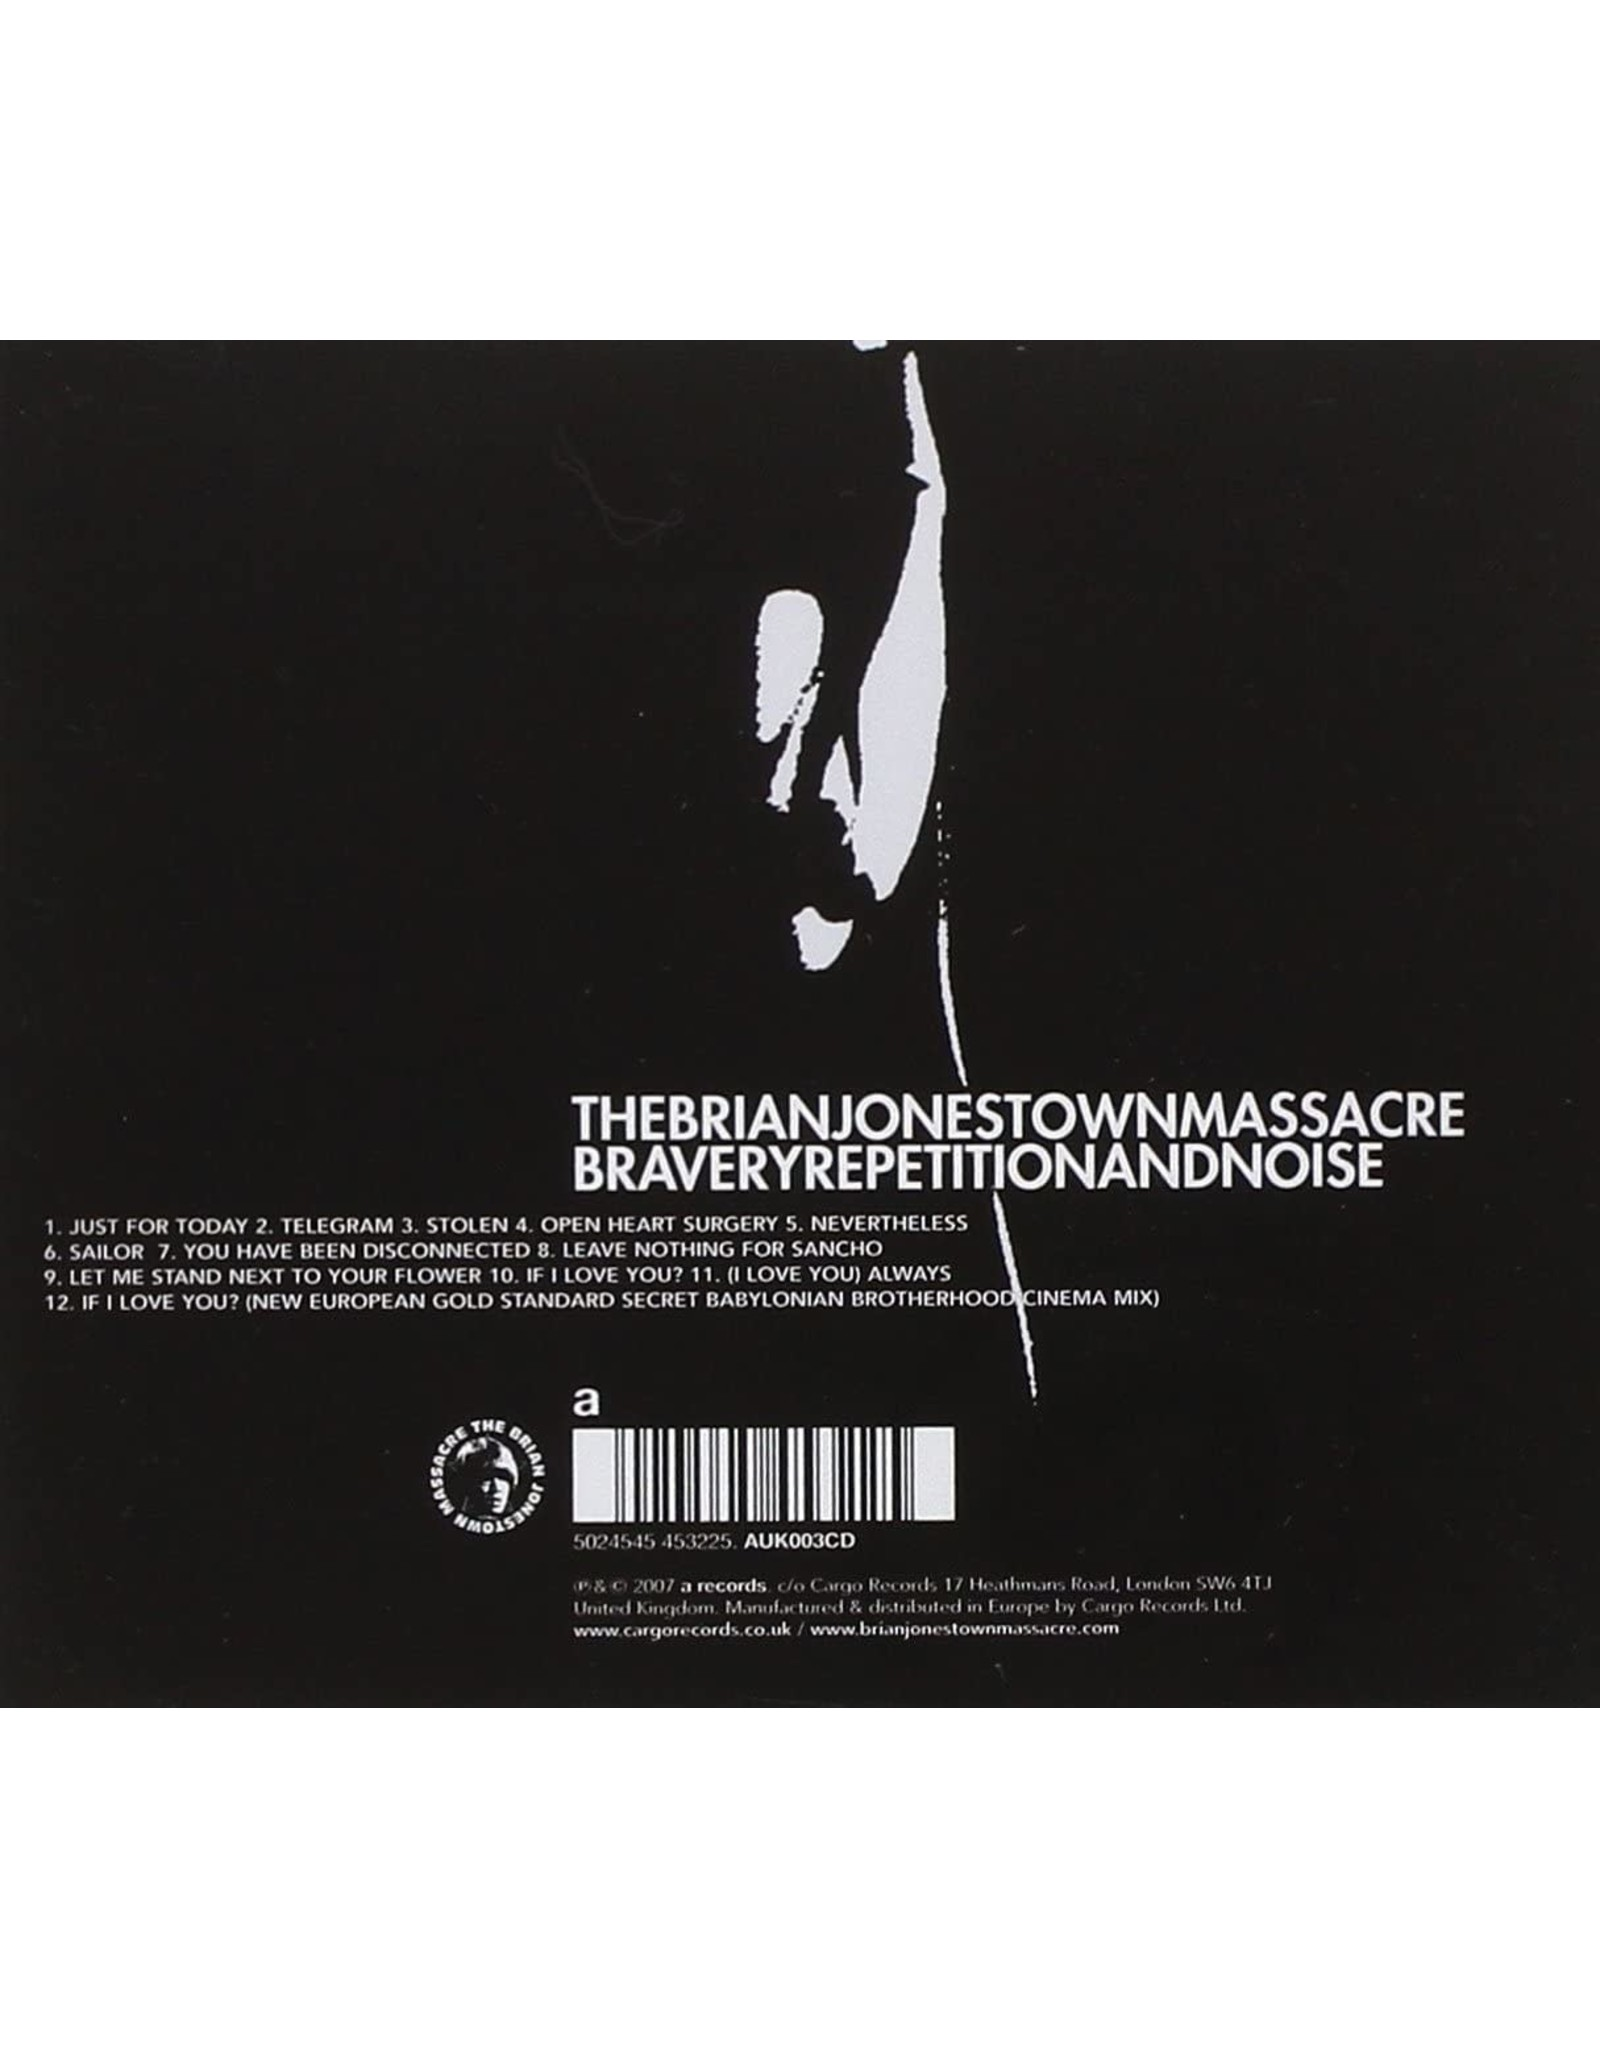 Brian Jonestown Massacre - Bravery Repetition and Noise